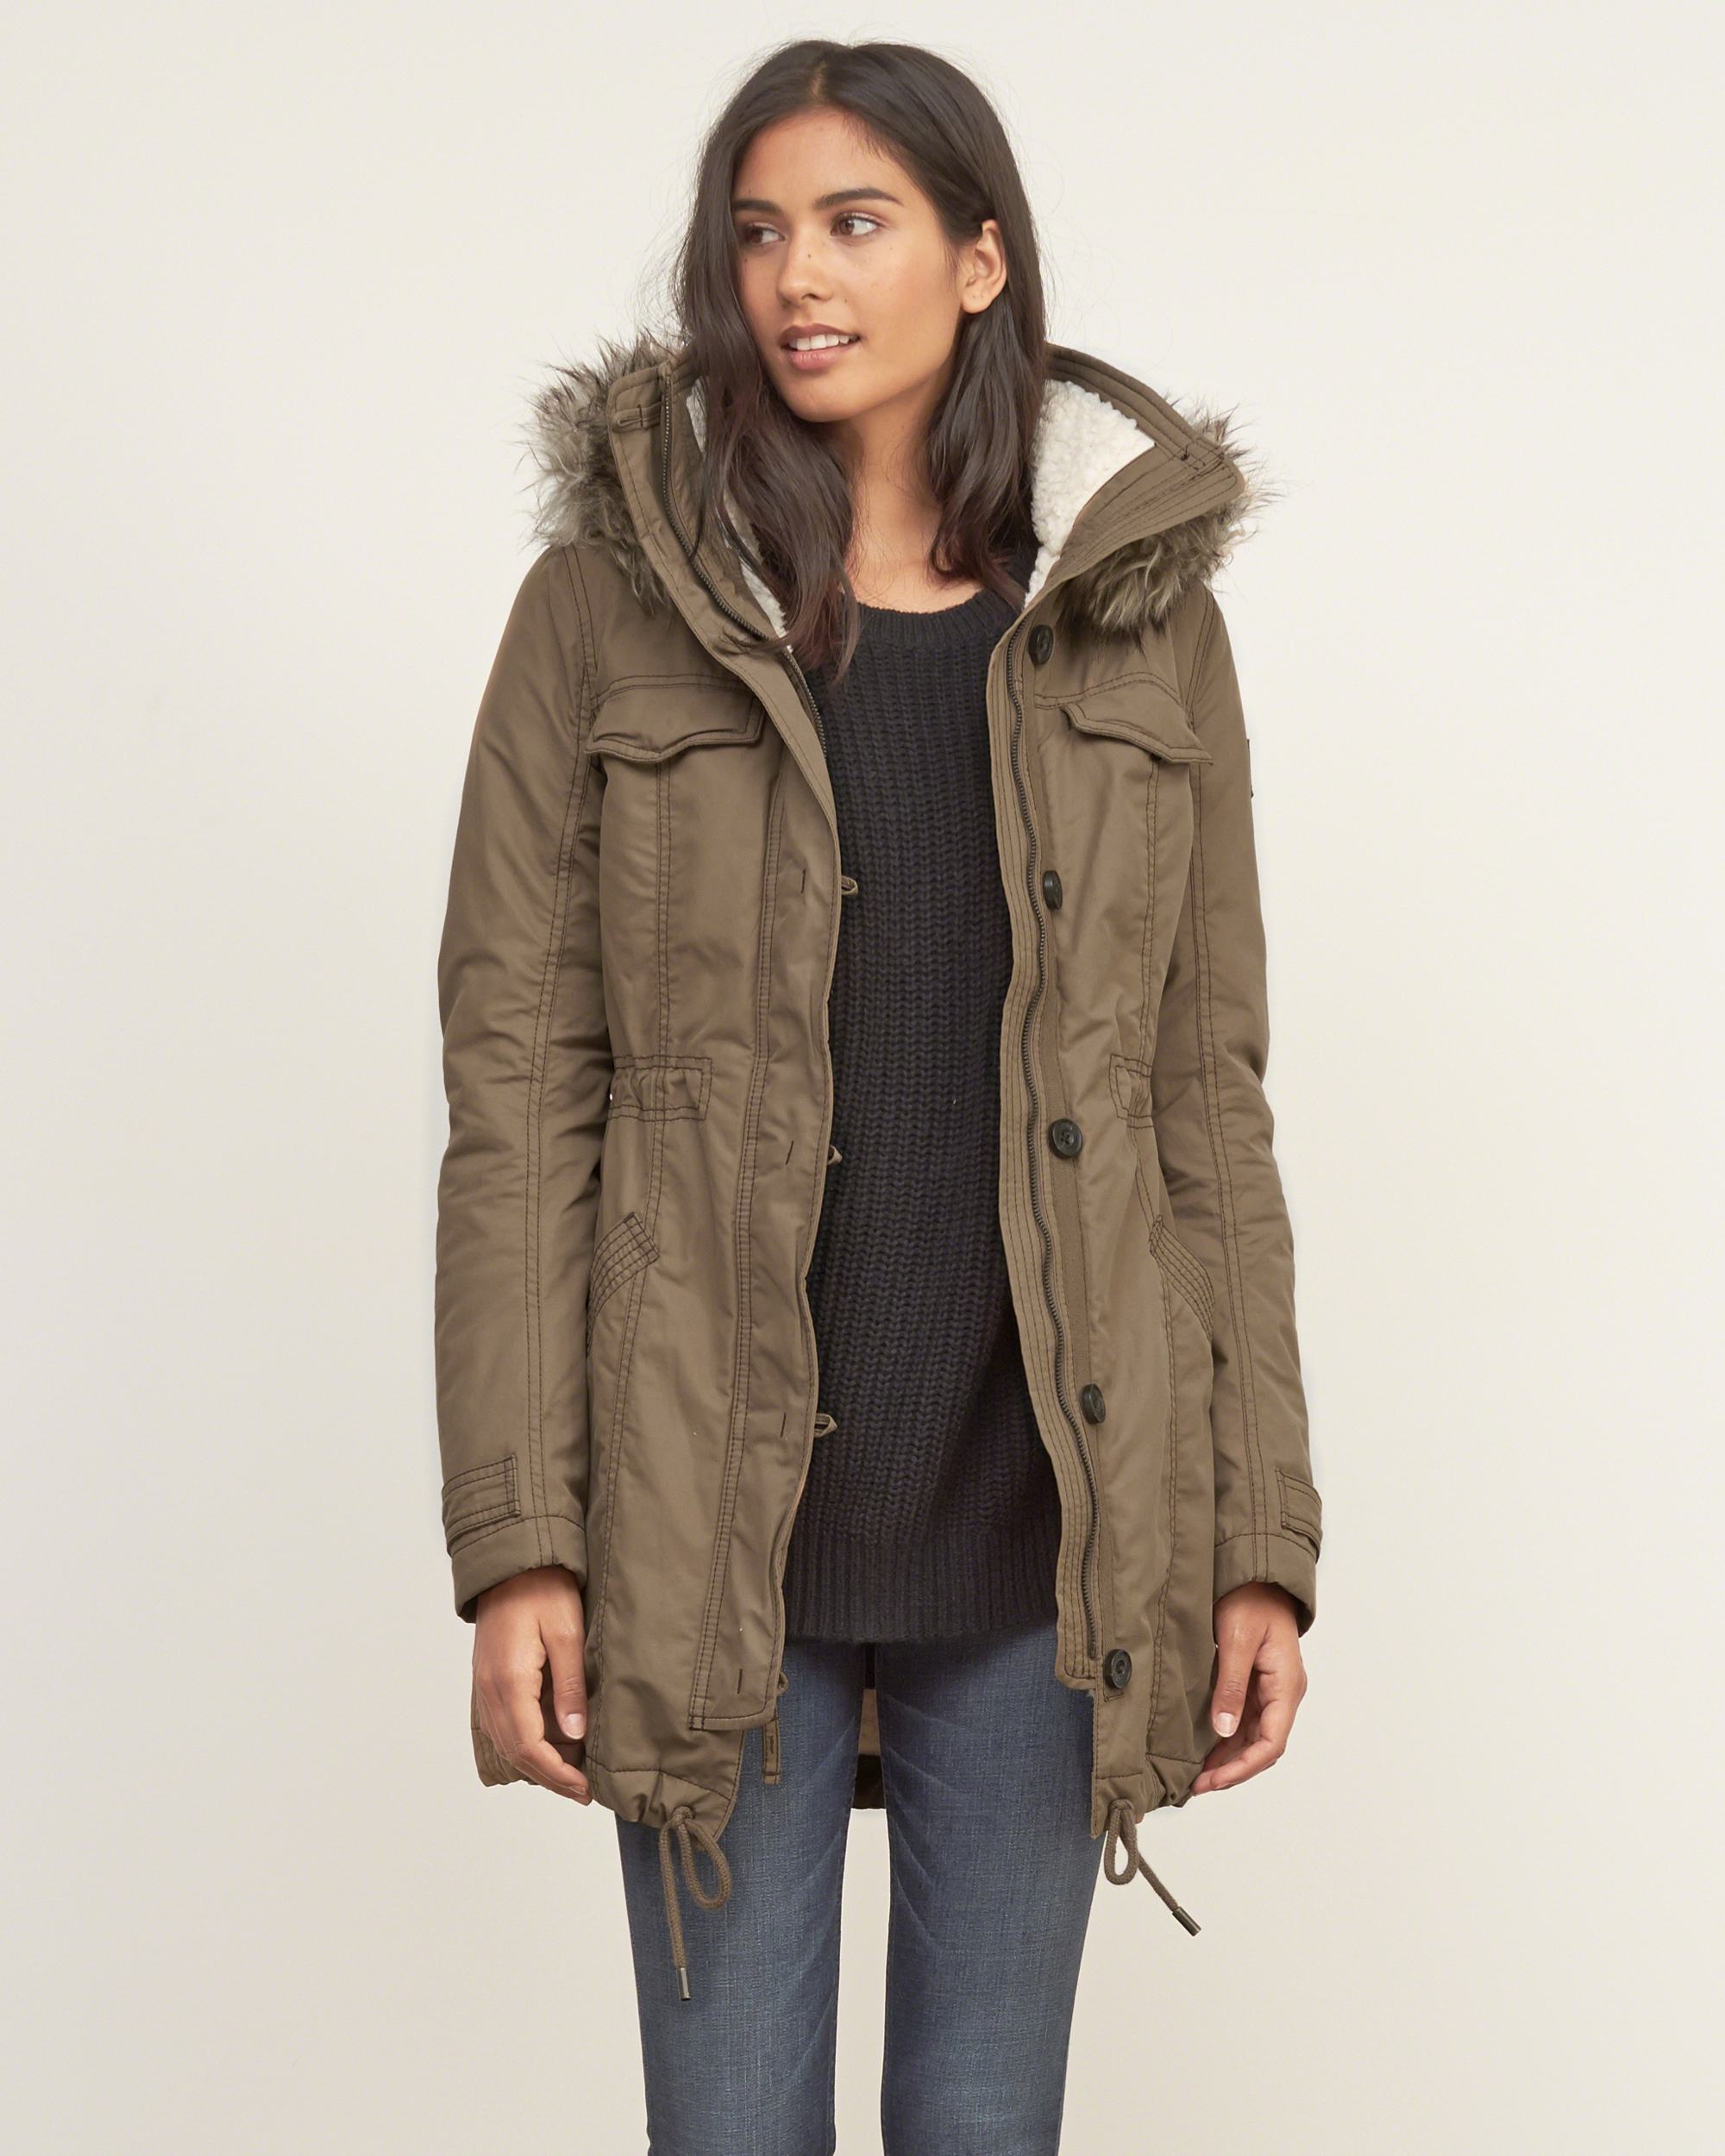 Abercrombie & fitch A&f Sherpa Lined Military Parka in Blue | Lyst